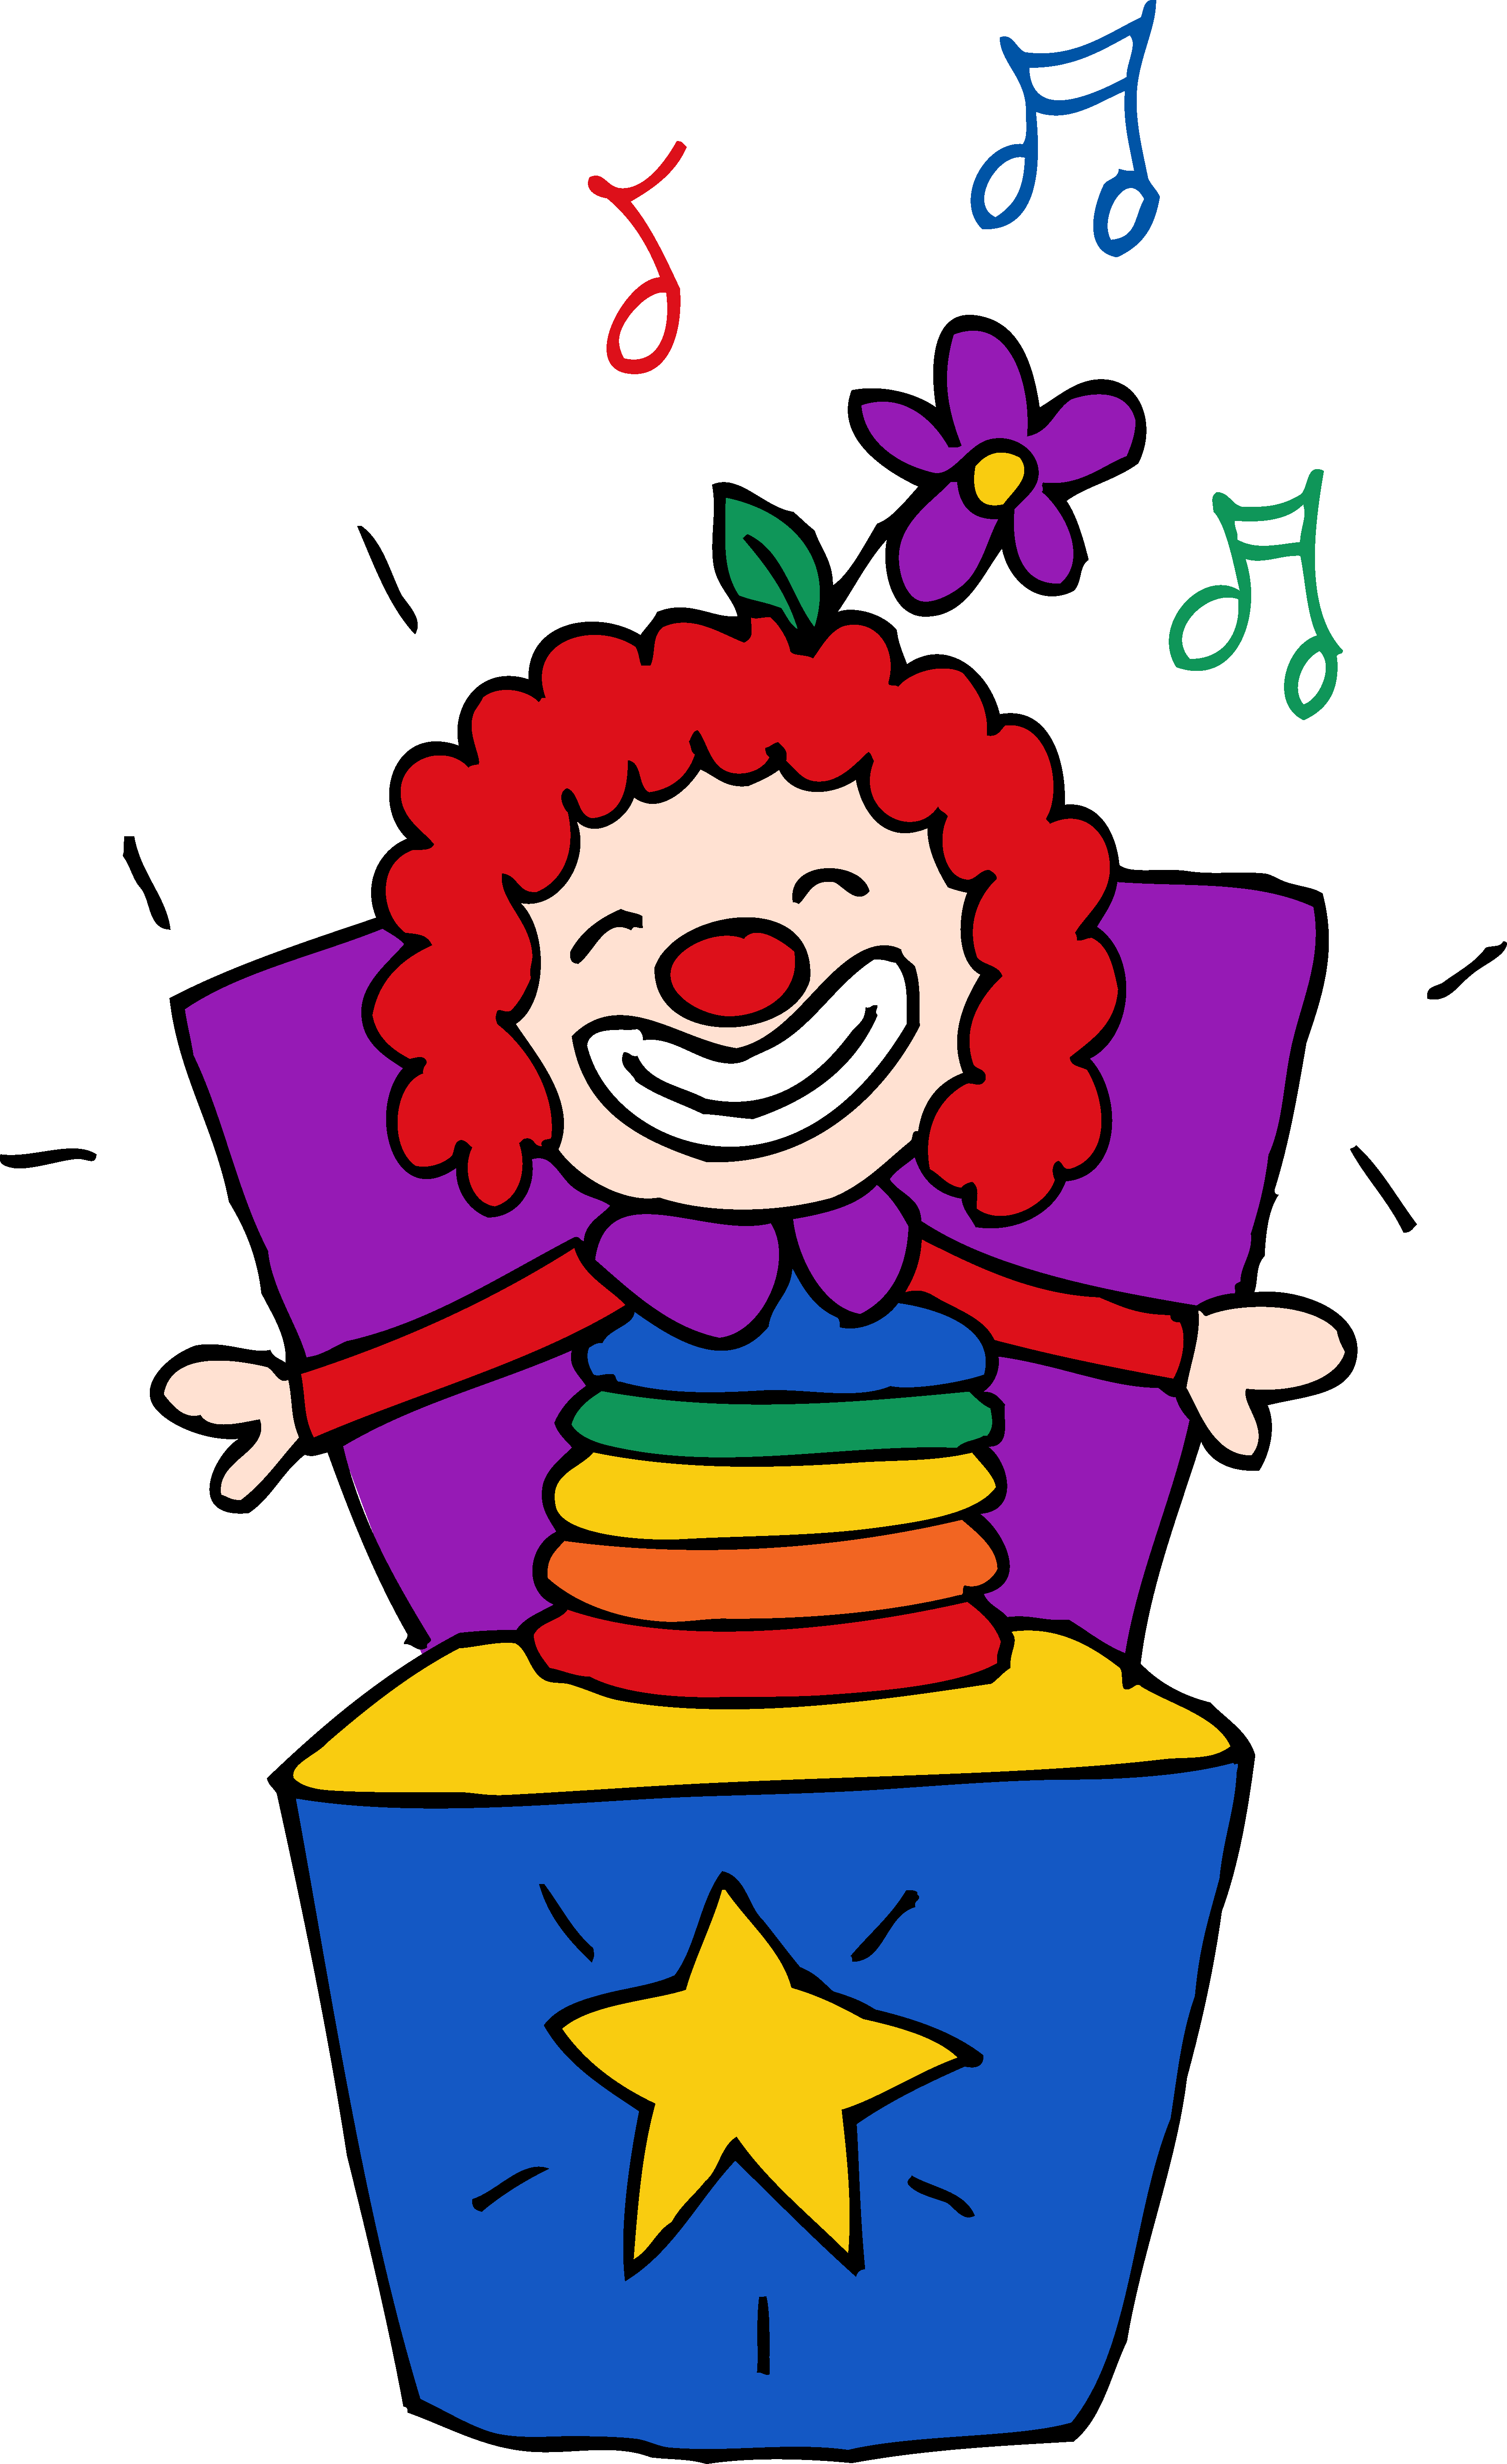 Design clipart box. Colorful jack in the